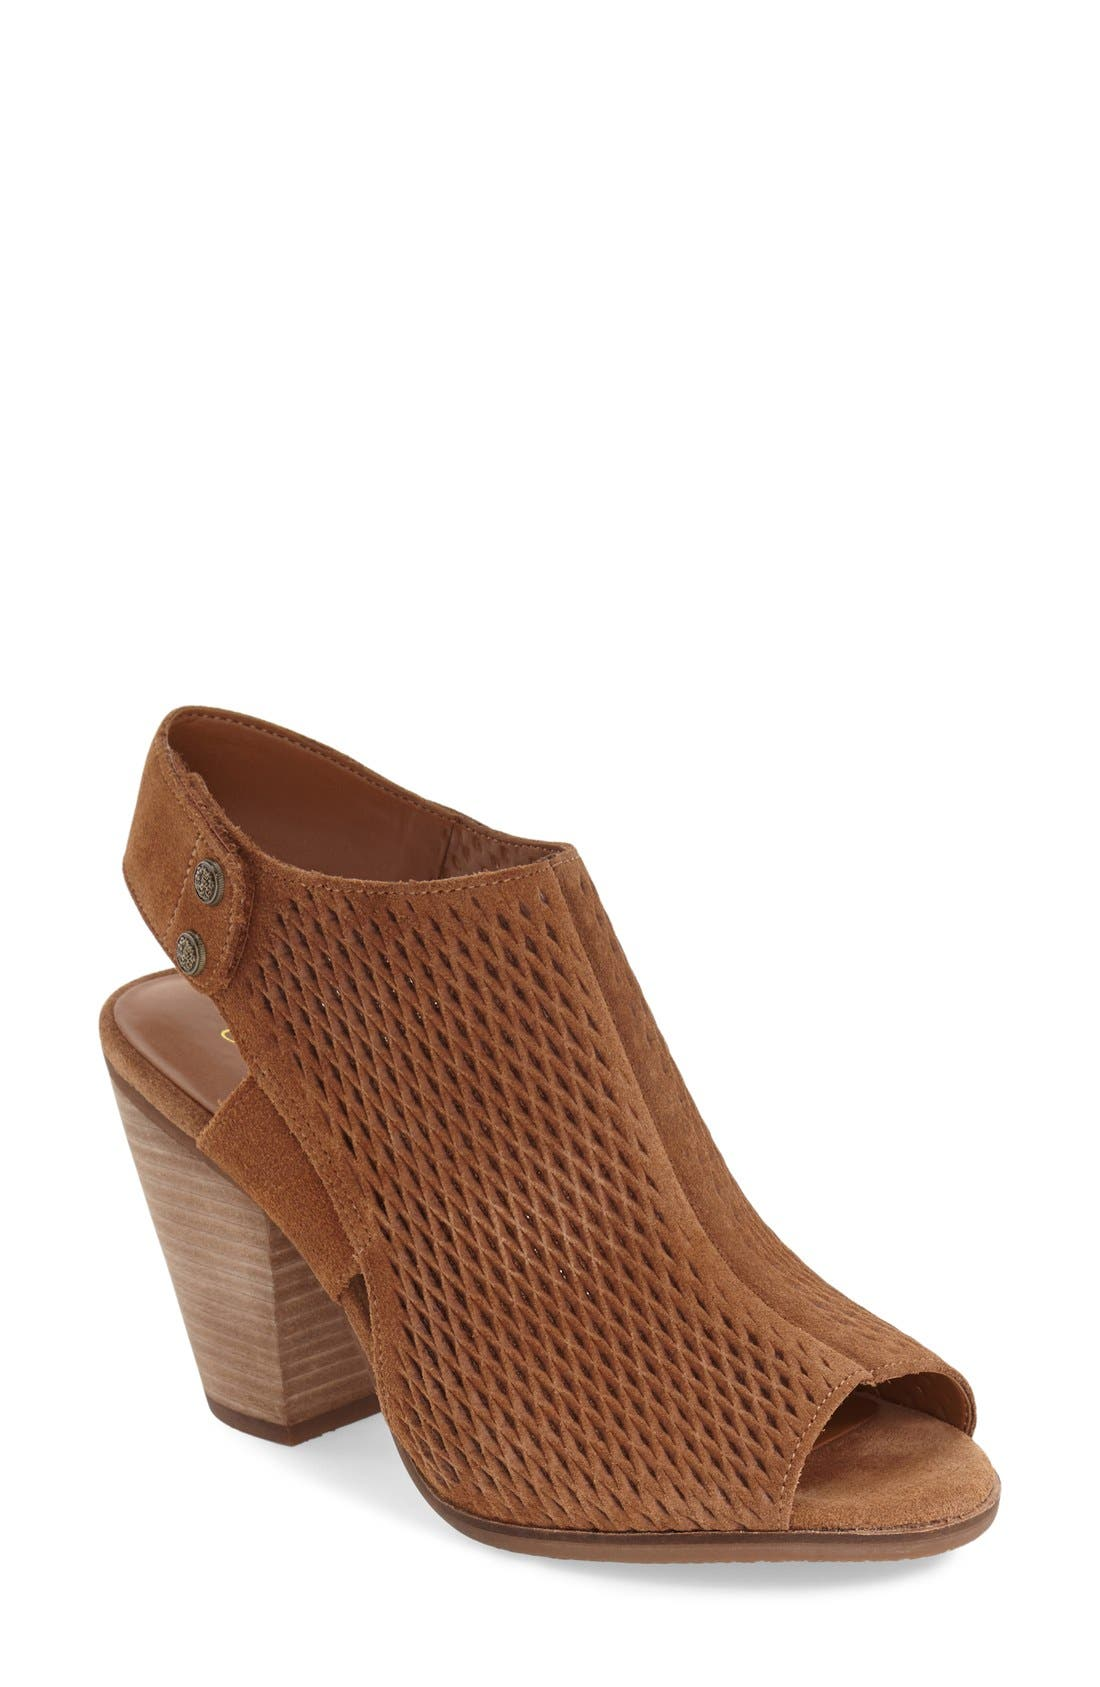 ARTURO CHIANG 'Janel' Perforated Slingback Sandal